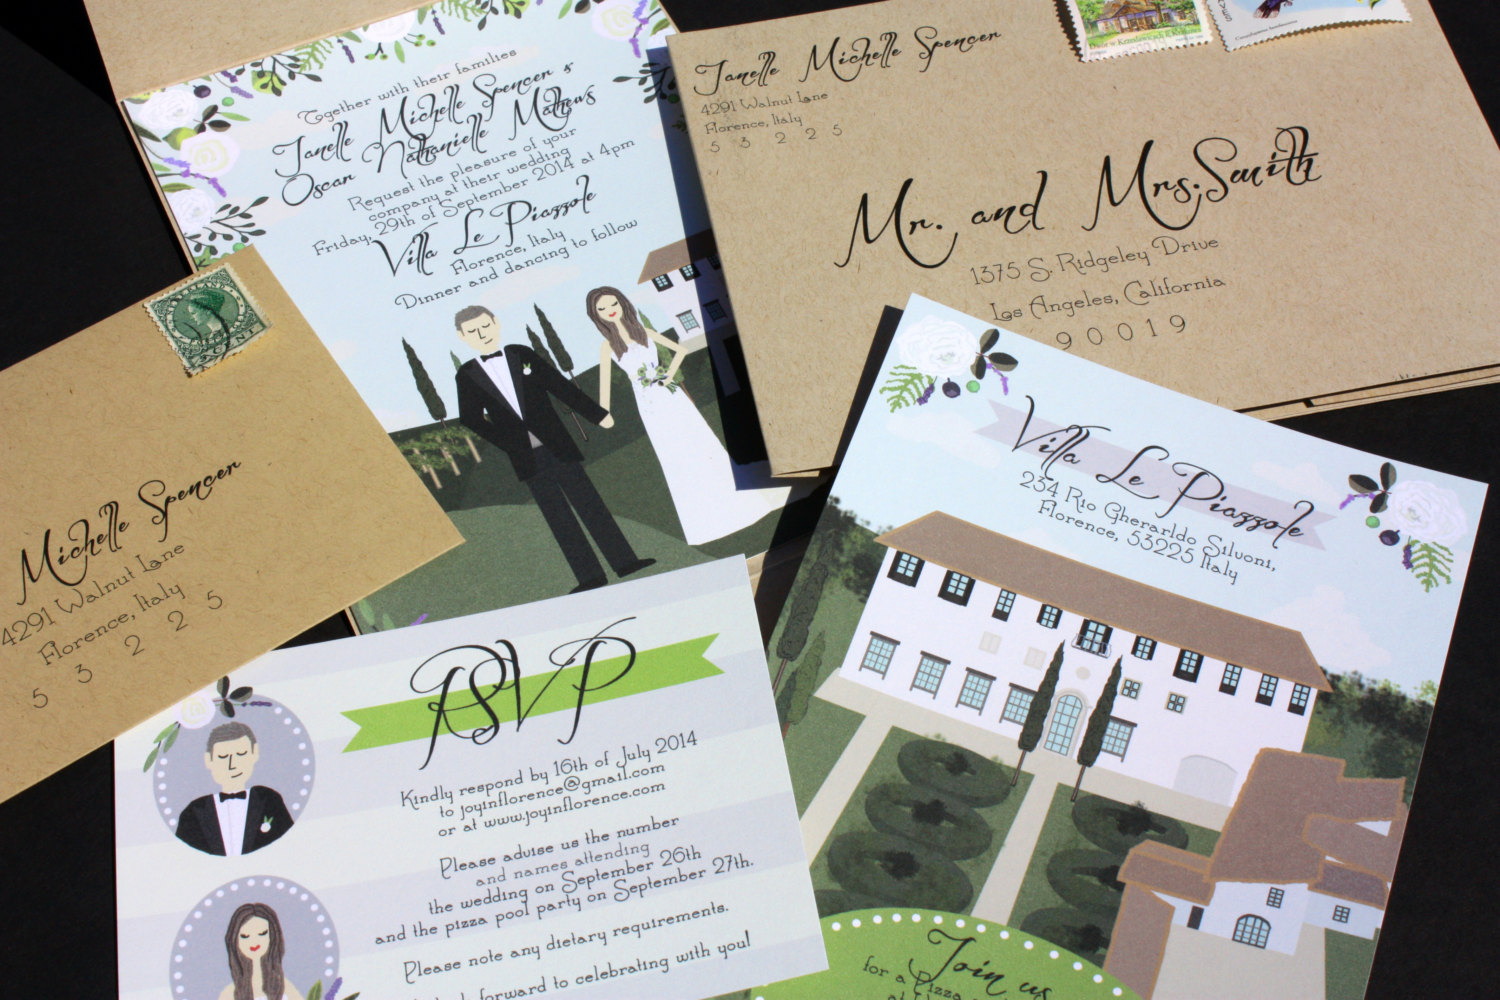 illustrated wedding invitations by chicks and hens | return address invitations